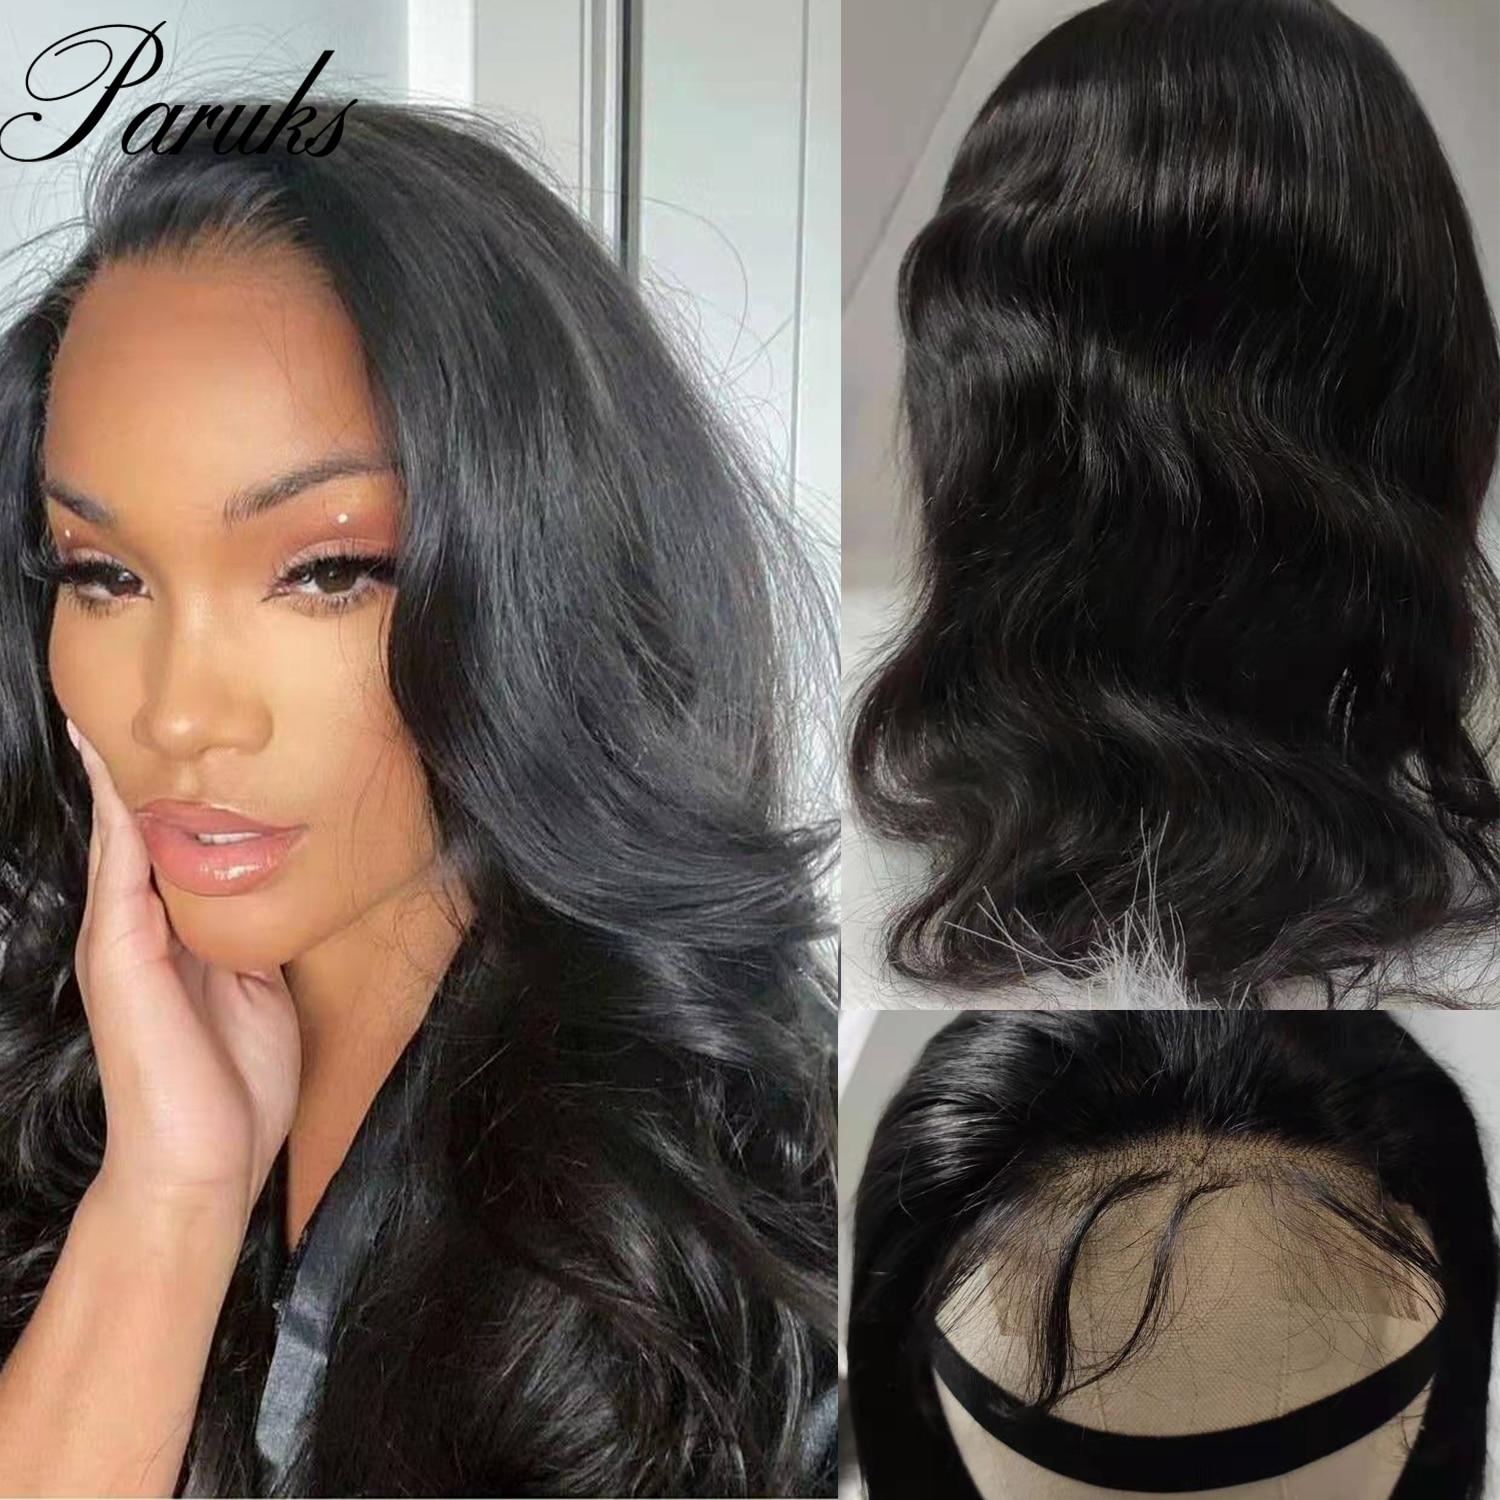 Paruks Peruvian Body Wave Lace Front Wigs Human Hair Wigs 4*4 Lace Front Hair Wigs 100% Human Remy Hair Wigs For Black Woman